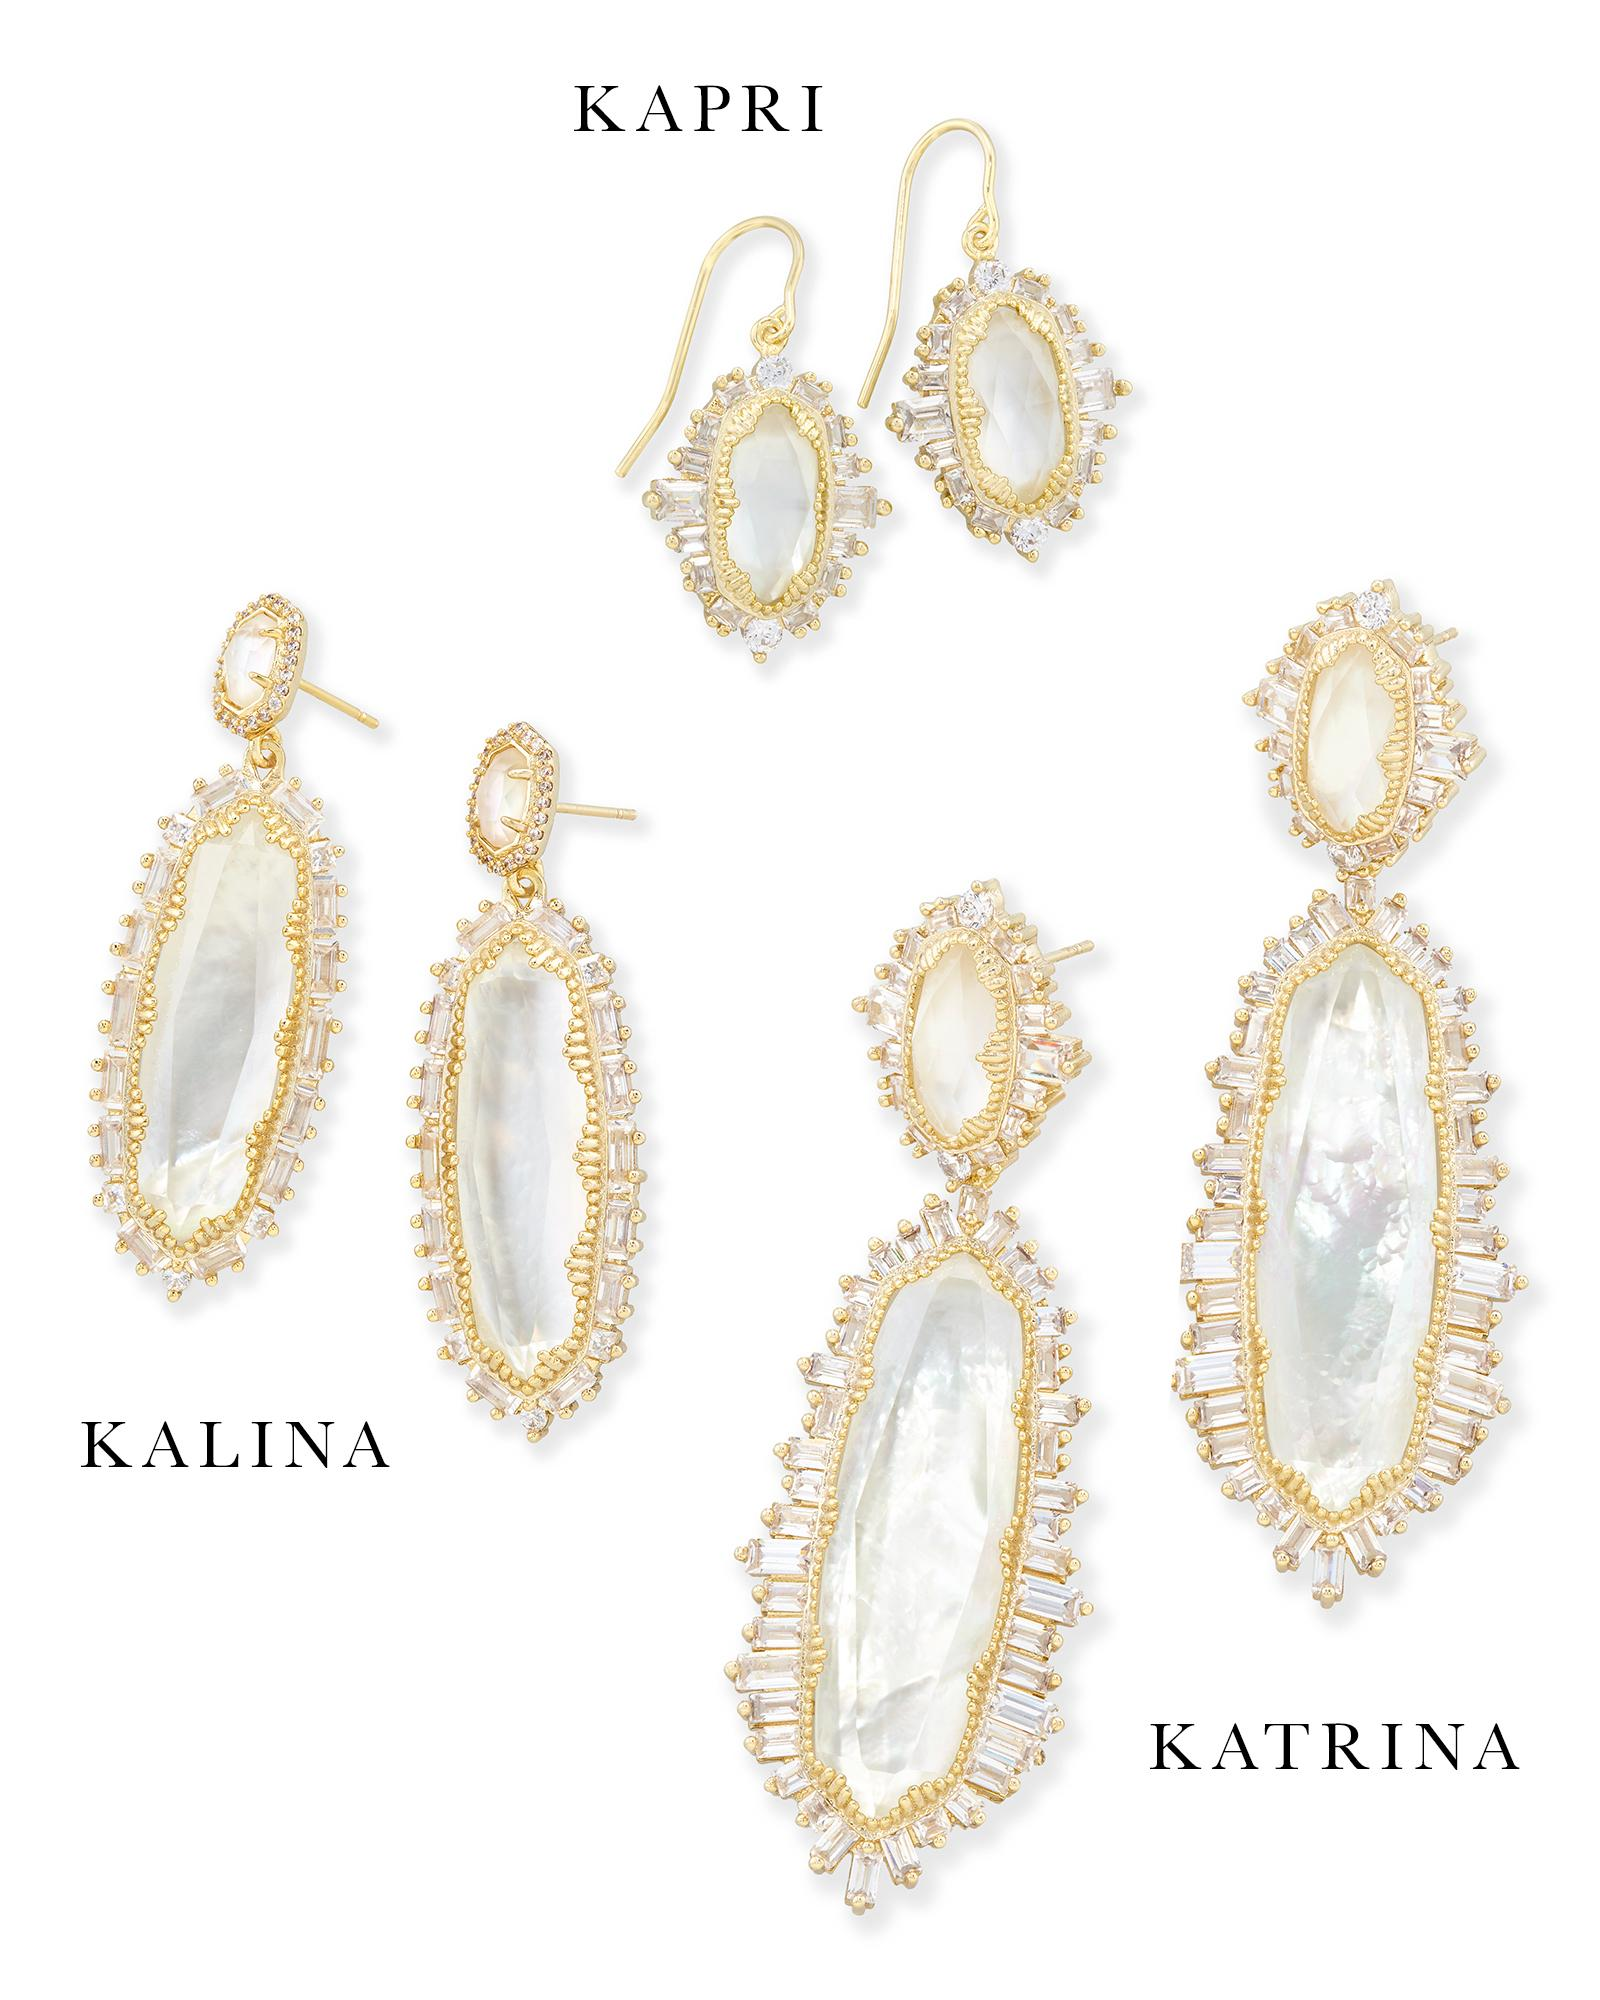 Kapri Drop Earrings